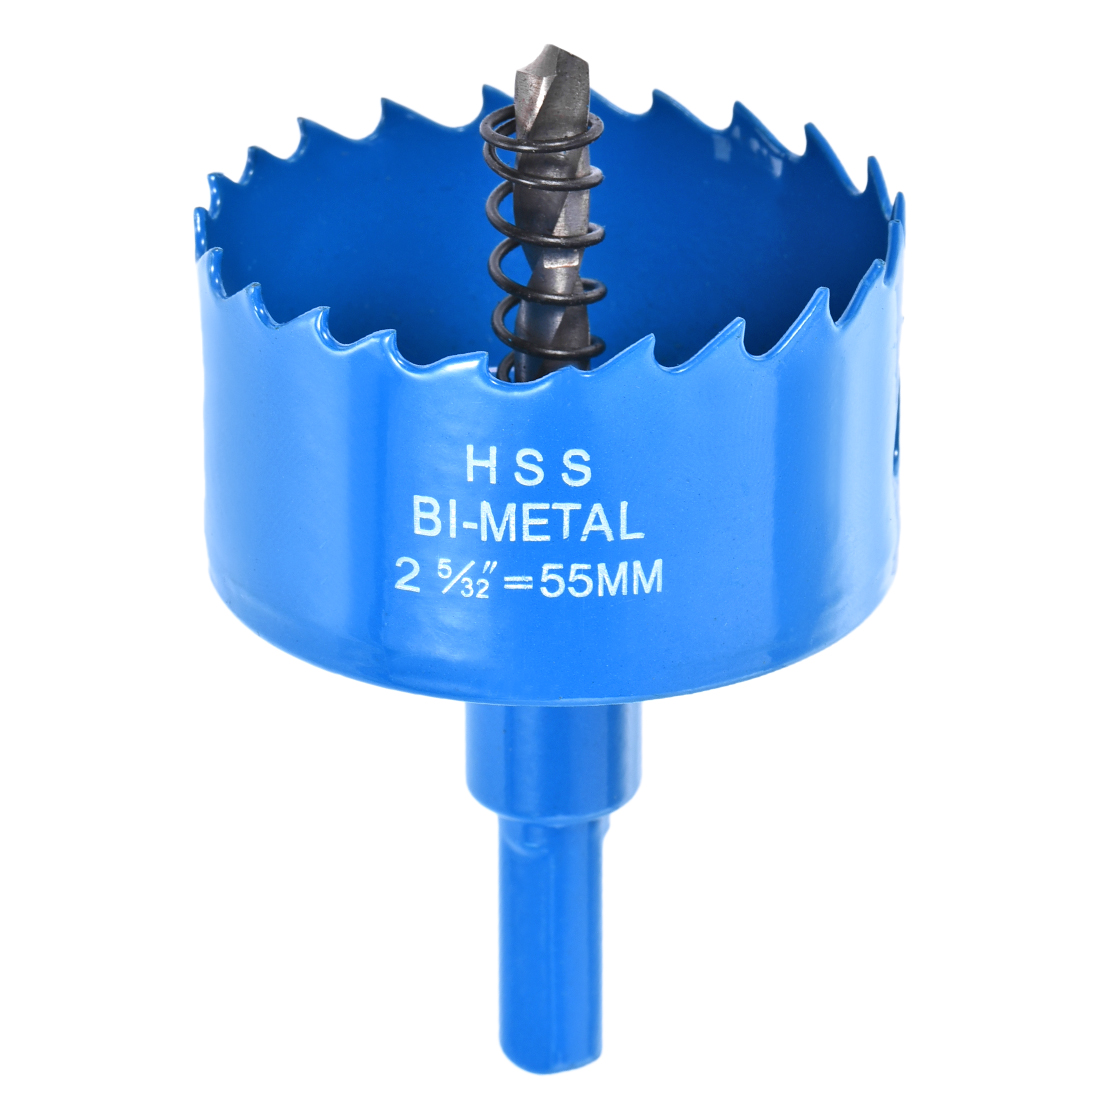 10mm Shank 28mm Cutting Dia Twist Drill Bit BI Metal Hole Saw Cutter for Aluminum Iron Wood